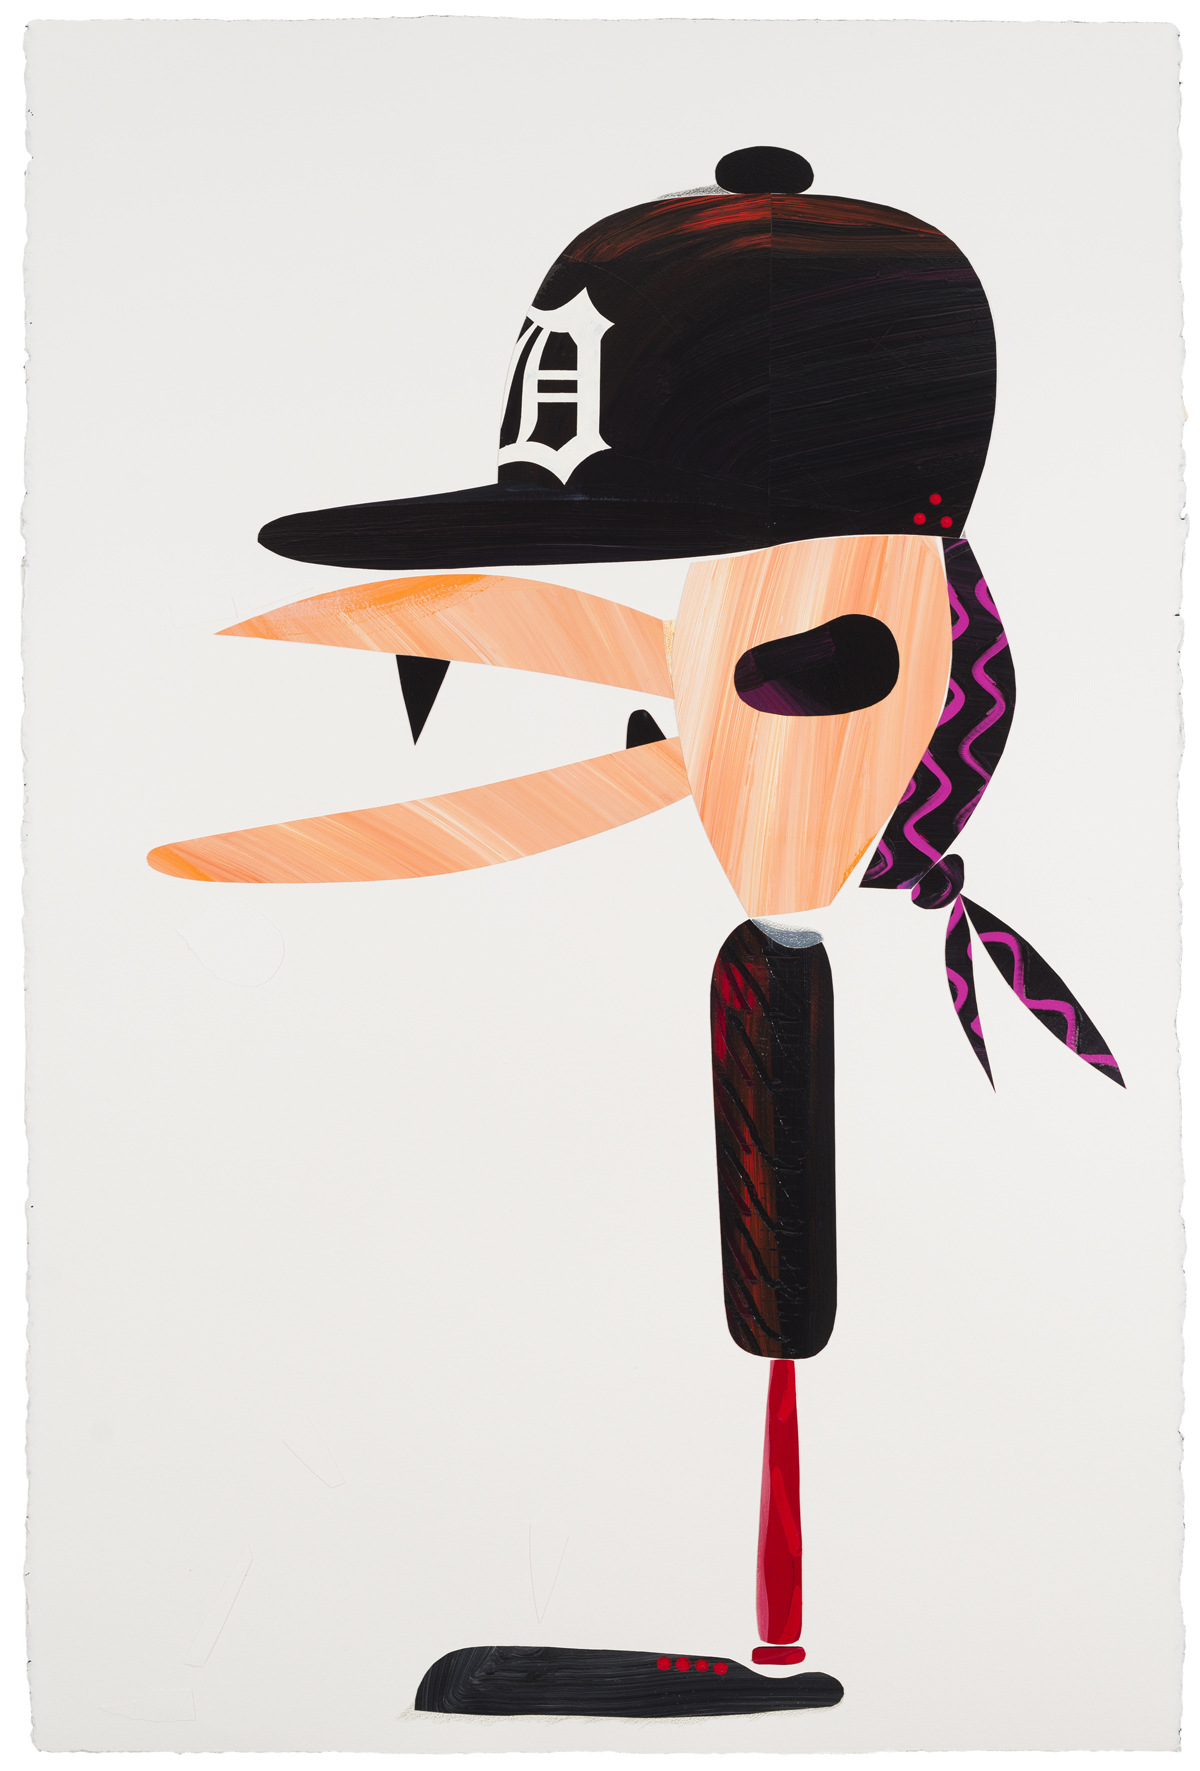 Abdul Vas. The Cut-Outs Rock Edge. Miguel Cabrera Detroit Tigers, 2012.